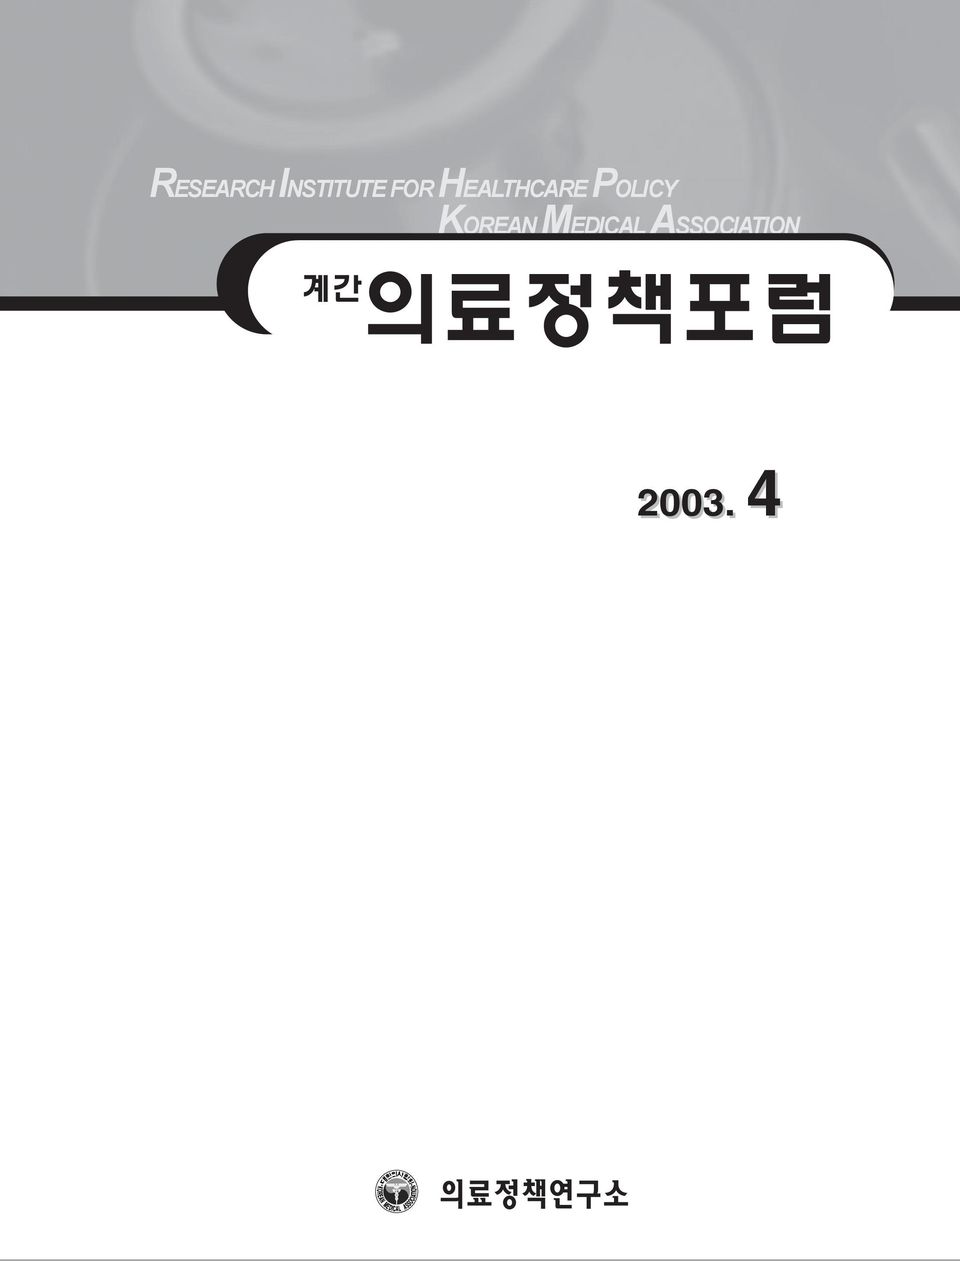 POLICY KOREAN